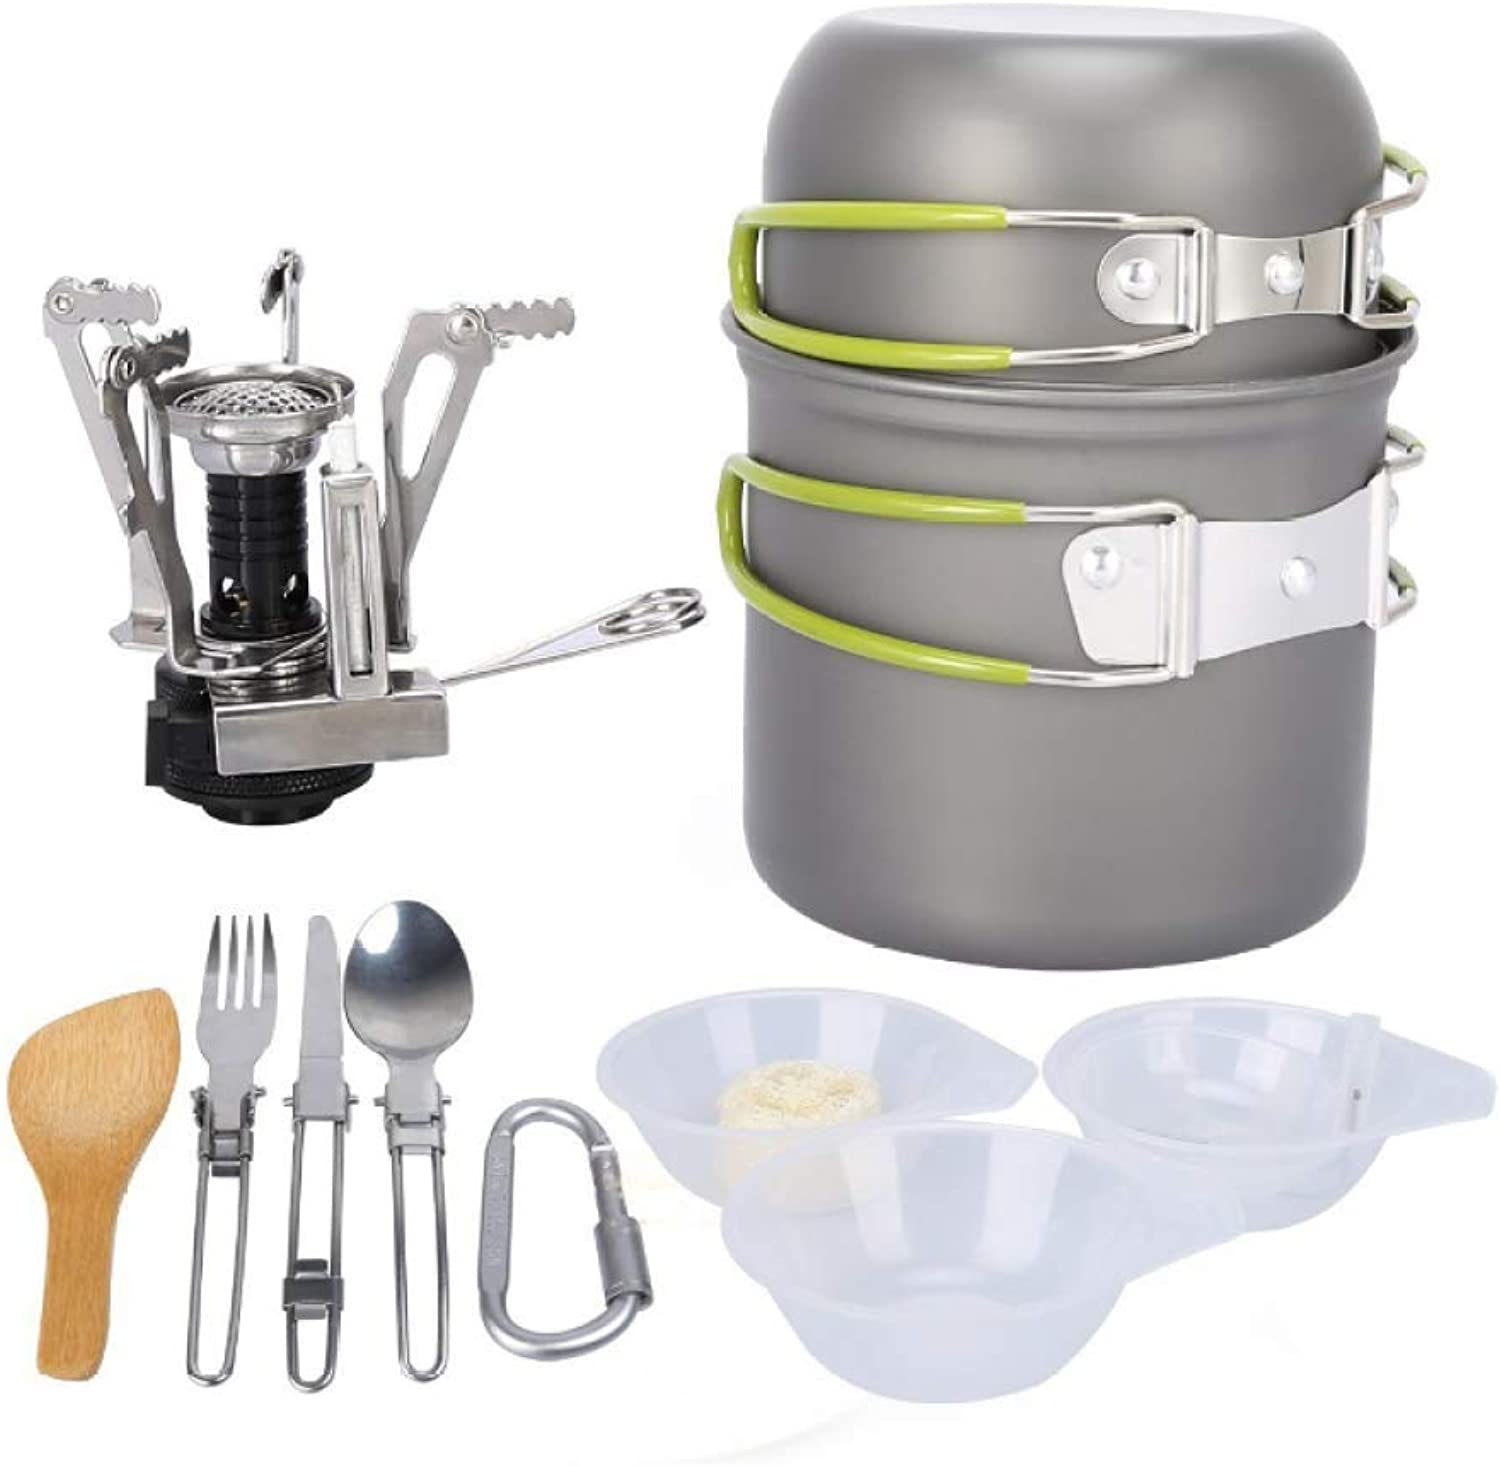 MTK Camping Cooker, Outdoor Portable Portable Camping Hiking Outdoor Cooking Pot Set, Suitable for 12 People, Light and Compact, Can Be Placed in A Backpack